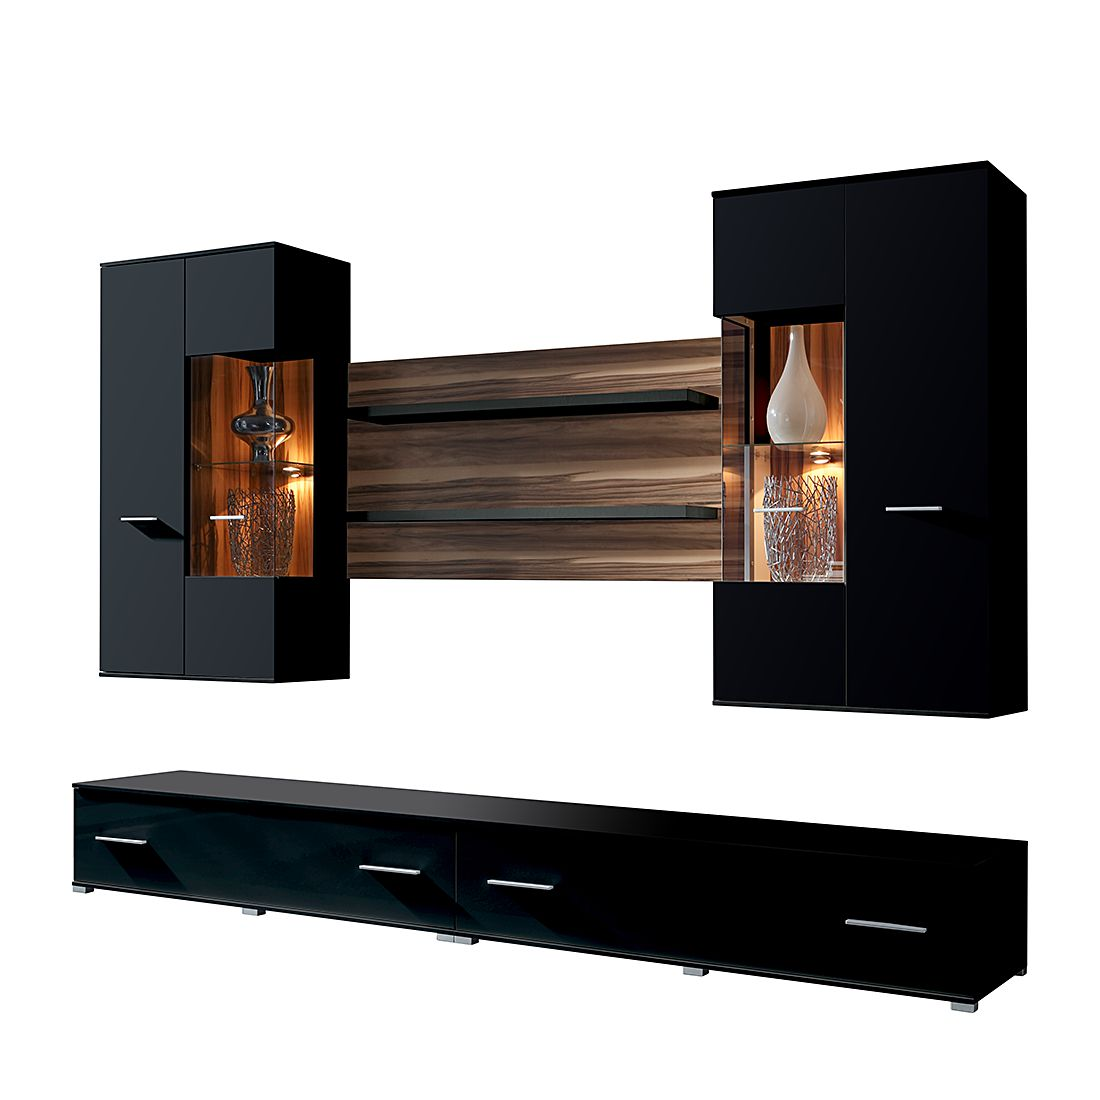 wohnzimmer nussbaum schwarz. Black Bedroom Furniture Sets. Home Design Ideas